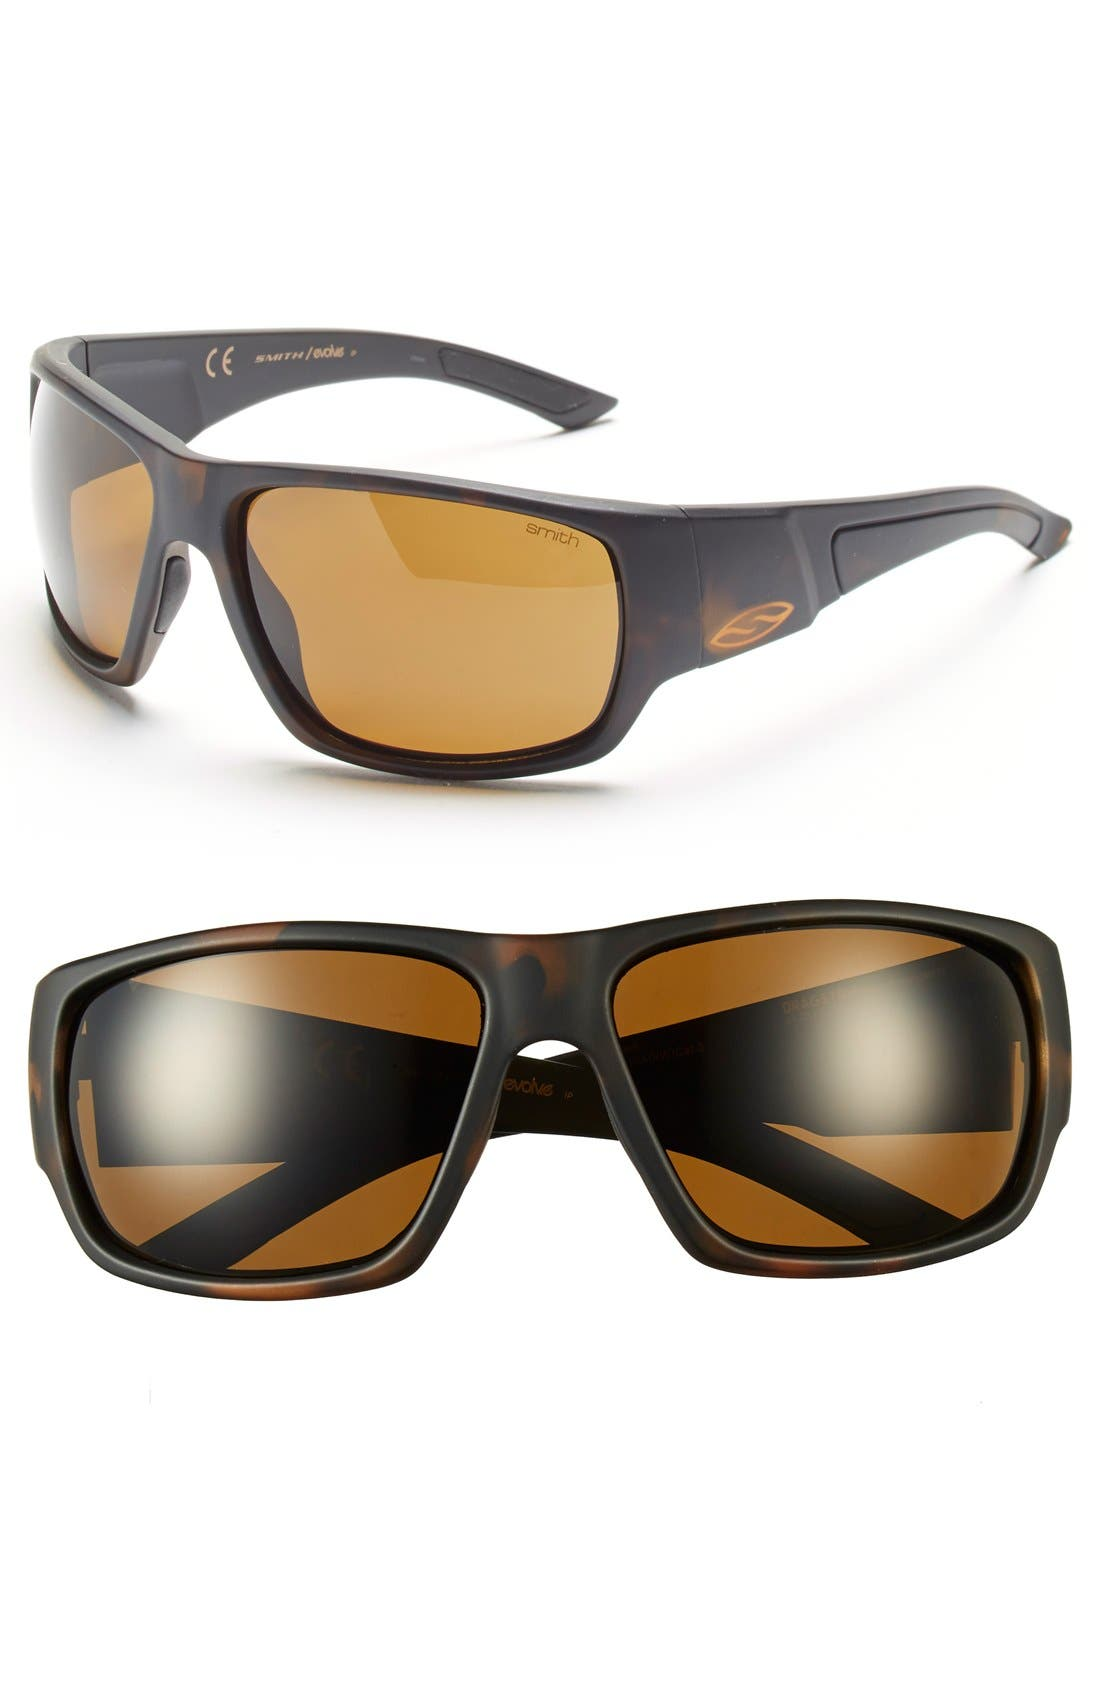 'Dragstrip' 64mm Polarized Sunglasses,                             Main thumbnail 1, color,                             MATTE TORTOISE/ POLAR BROWN